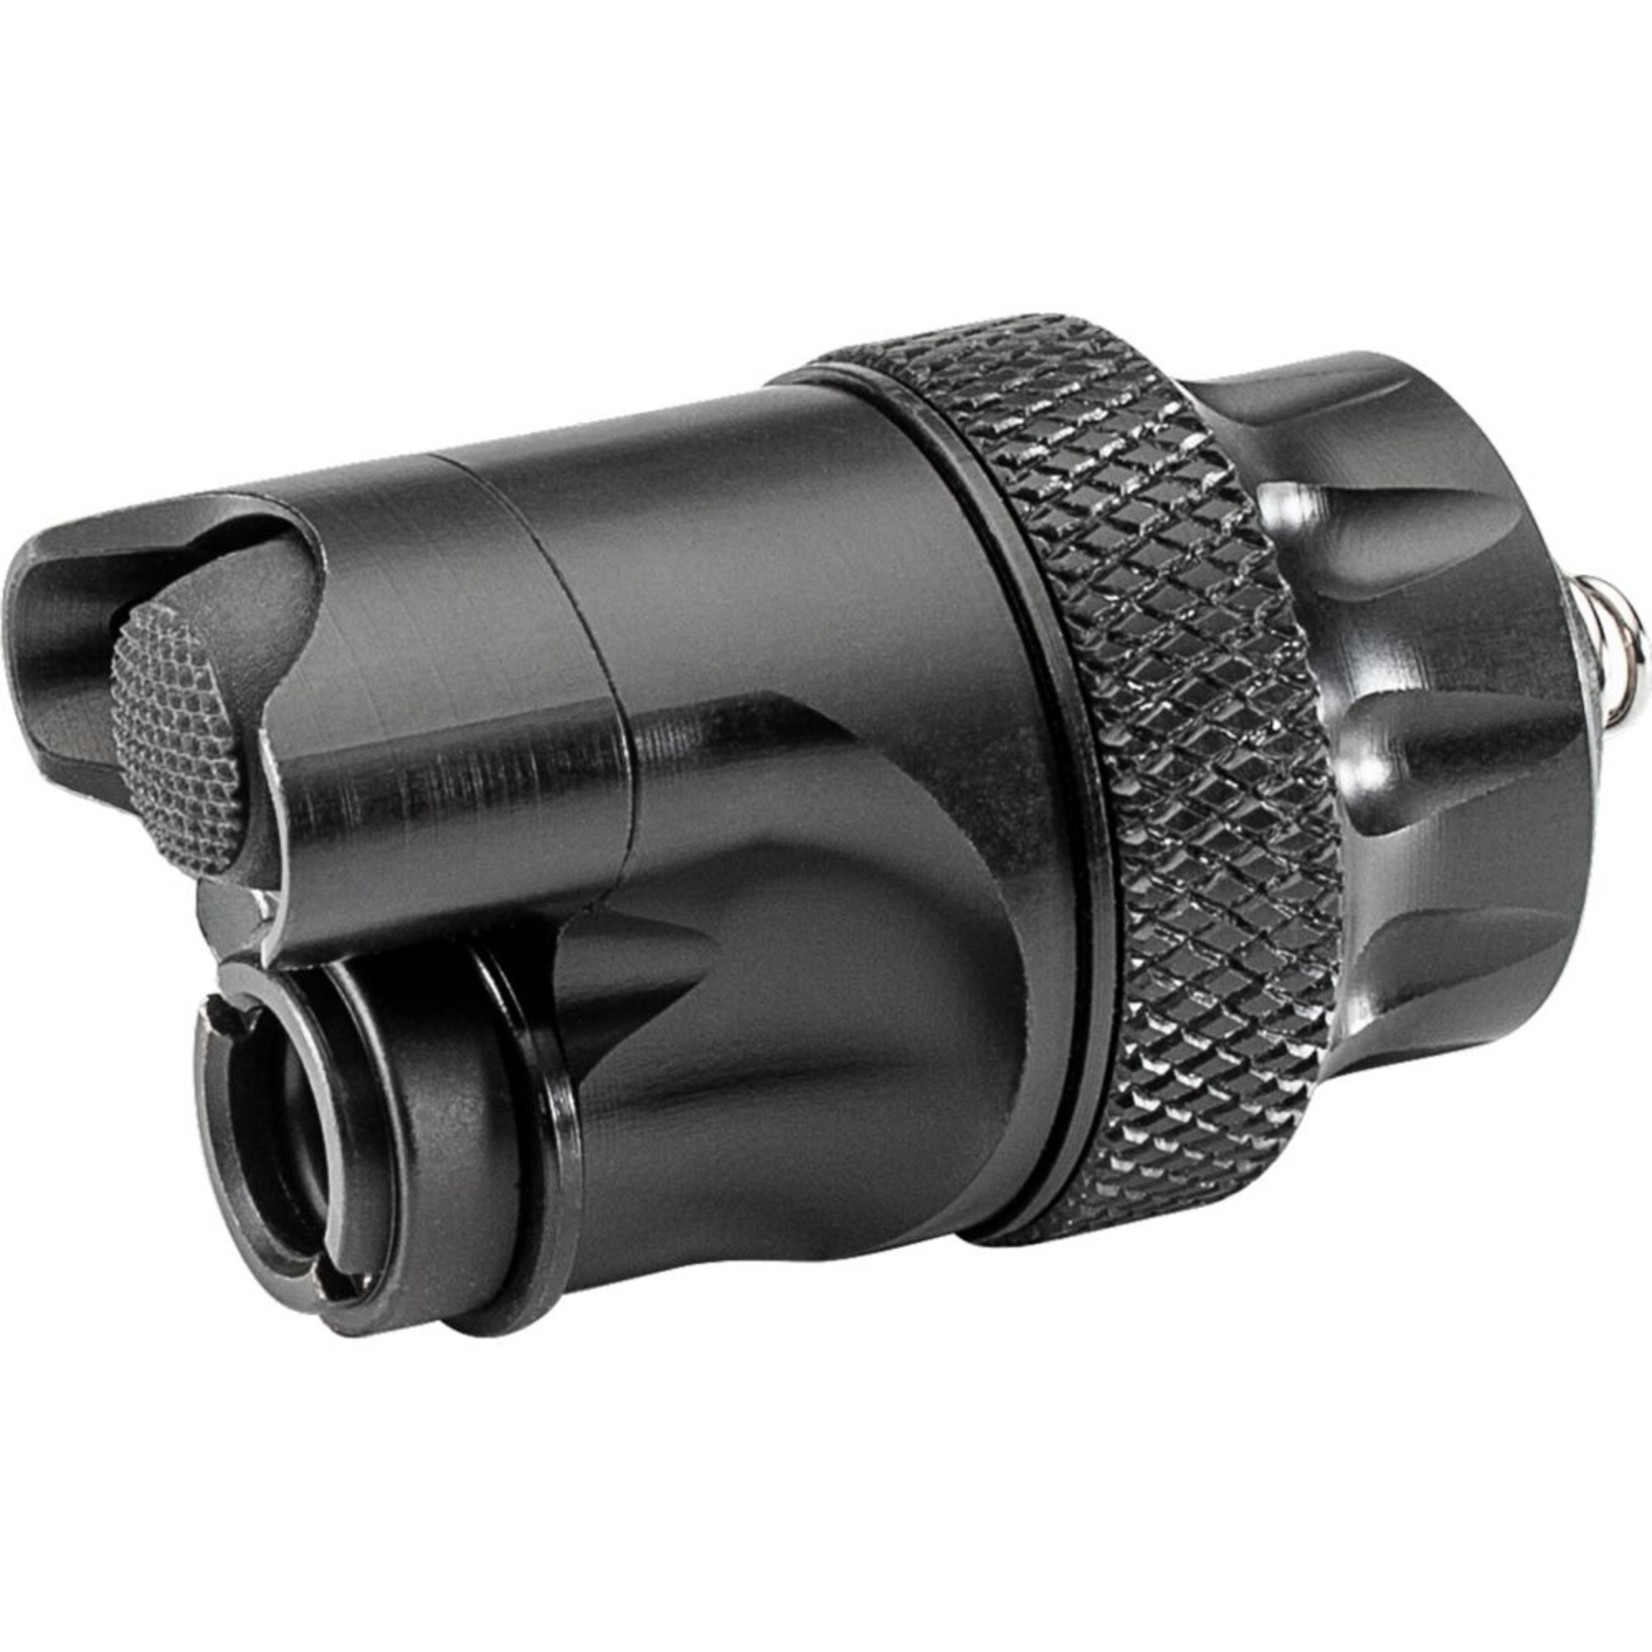 SUREFIRE DS00 WEAPONLIGHT TAIL SWITCH